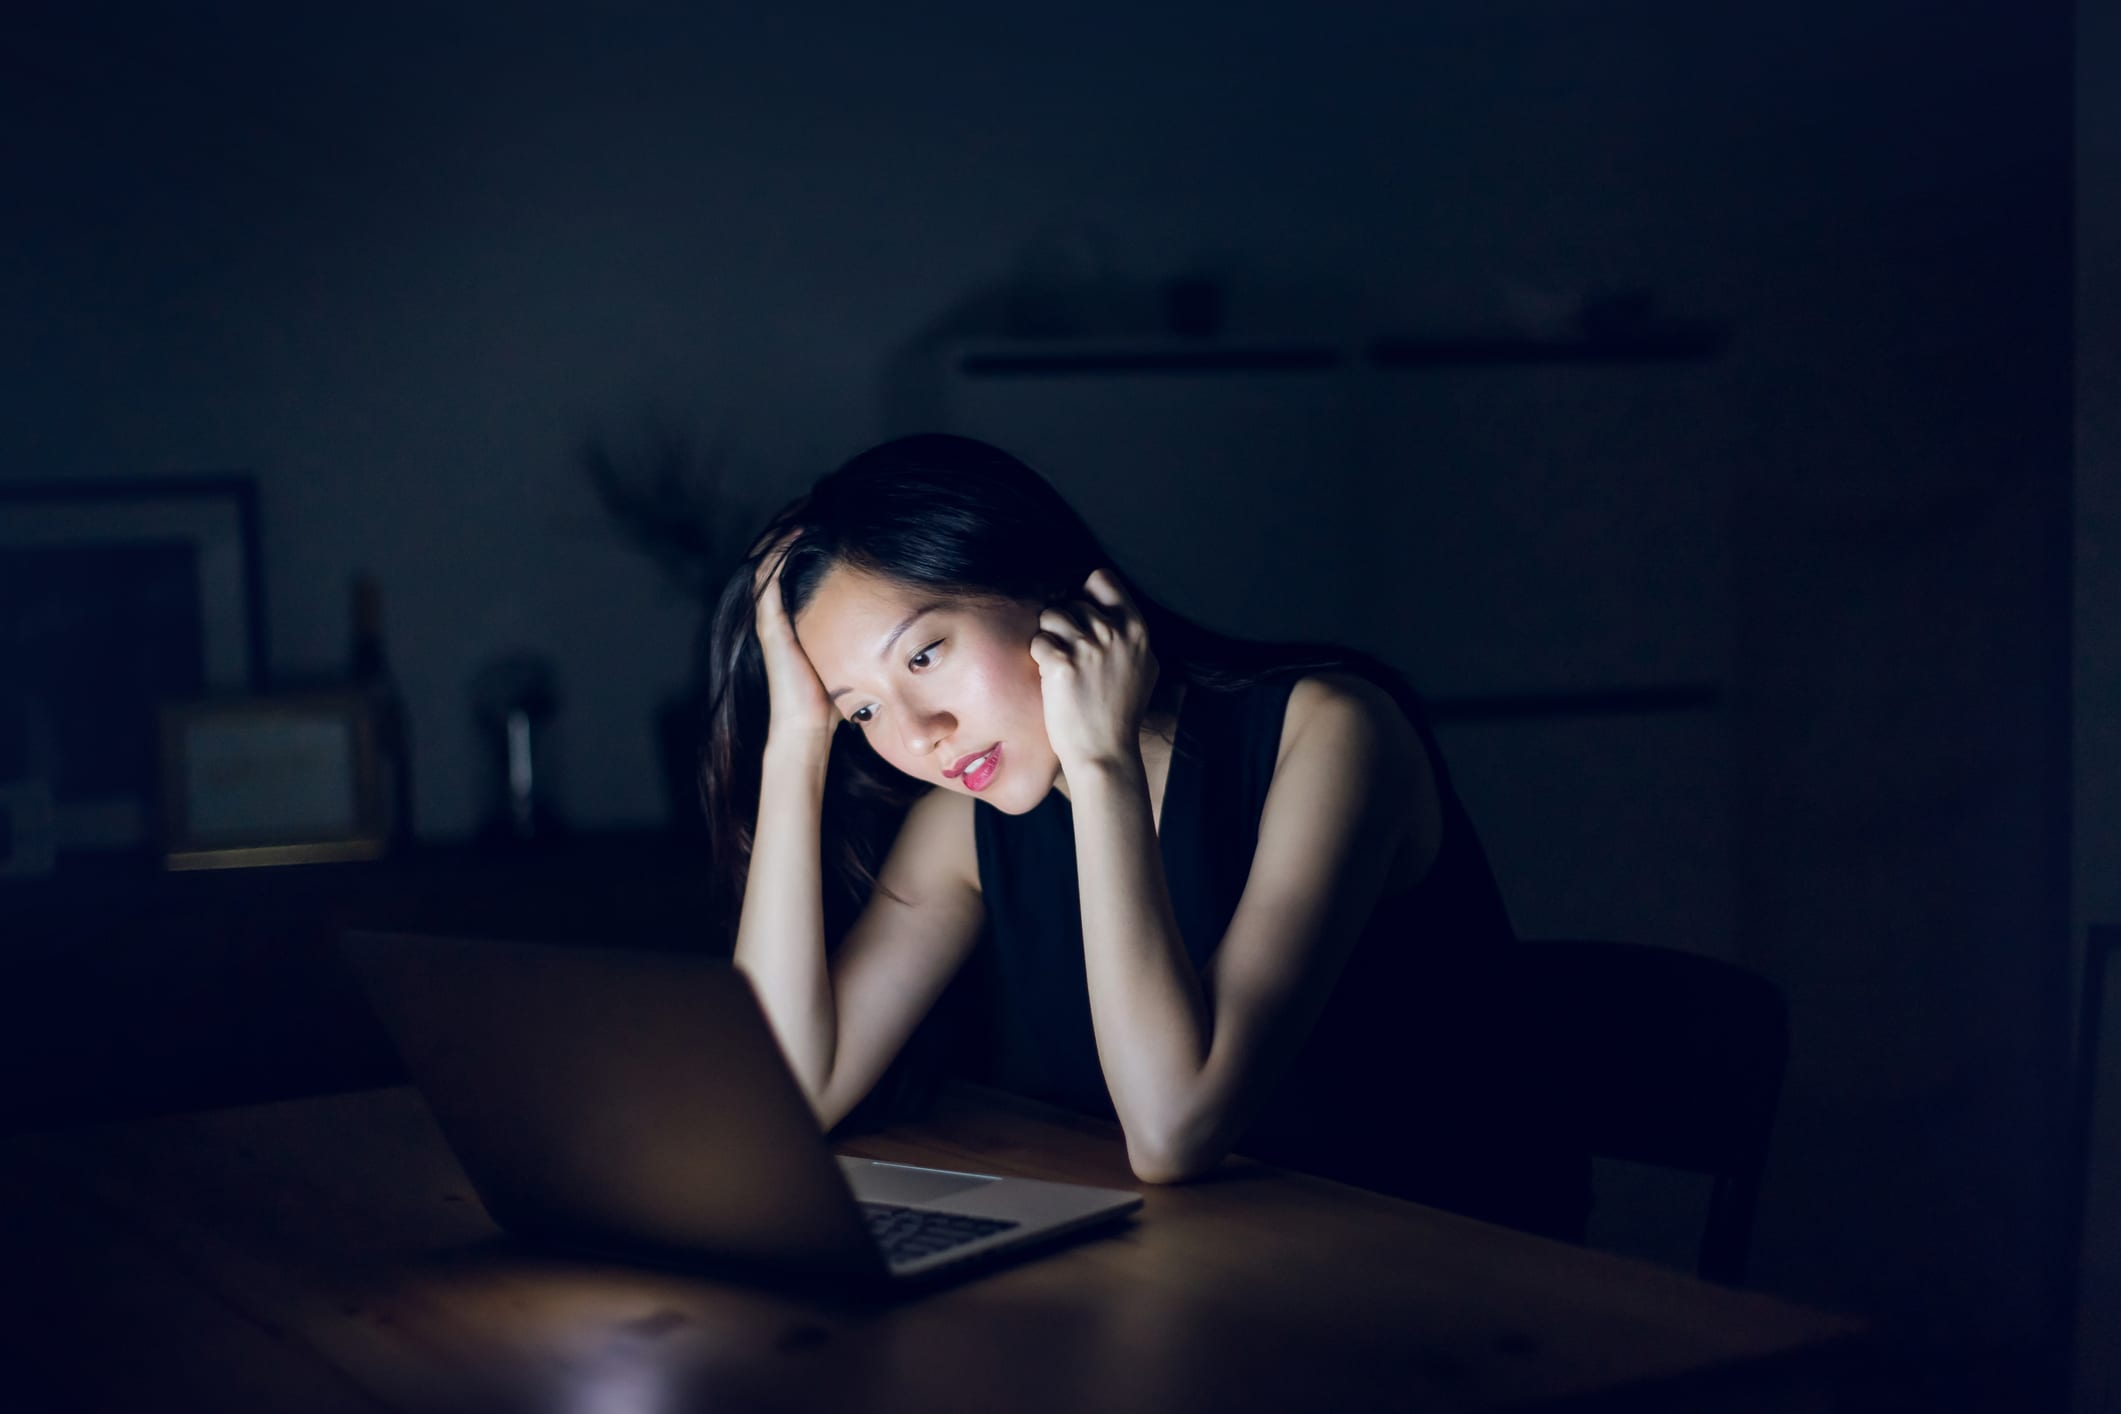 US women are working longer hours as their sleep and social lives suffer thumbnail